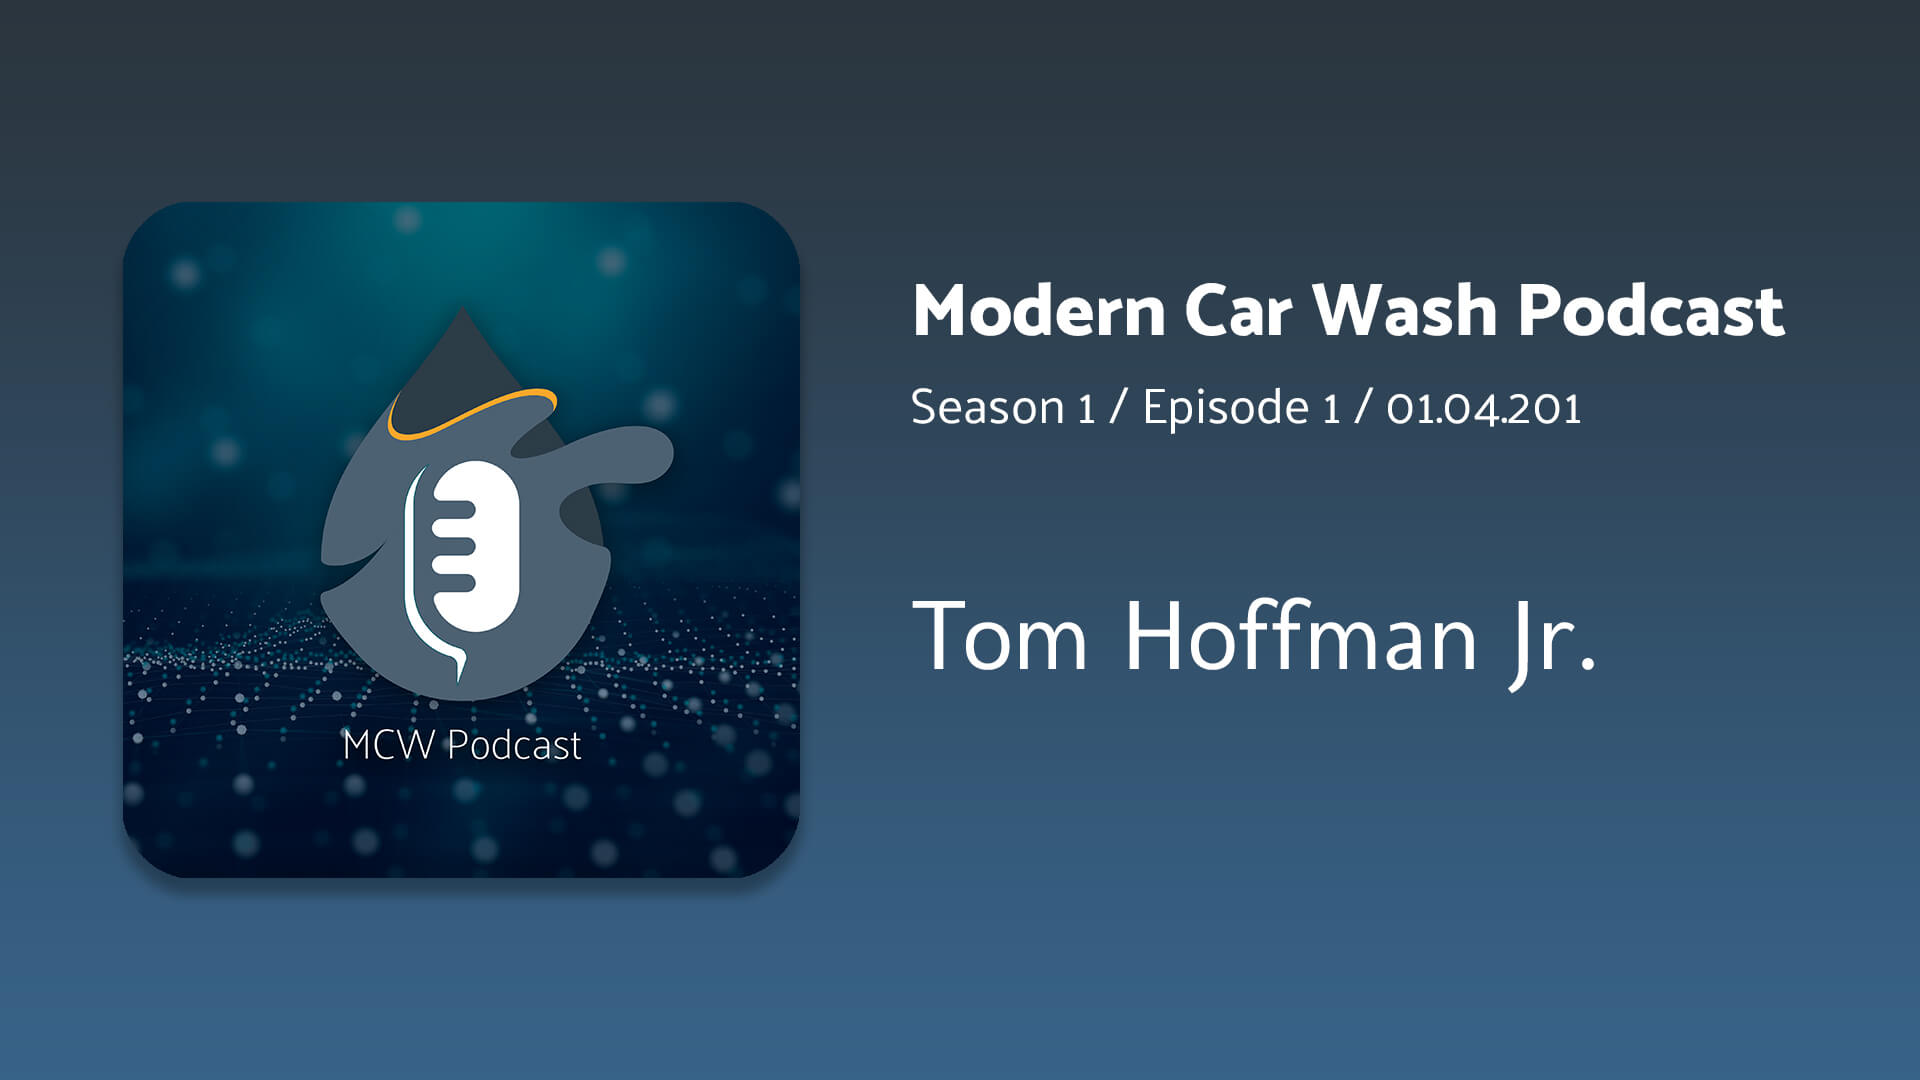 Modern Car Wash Podcast with Guest Tom Hoffman Jr.